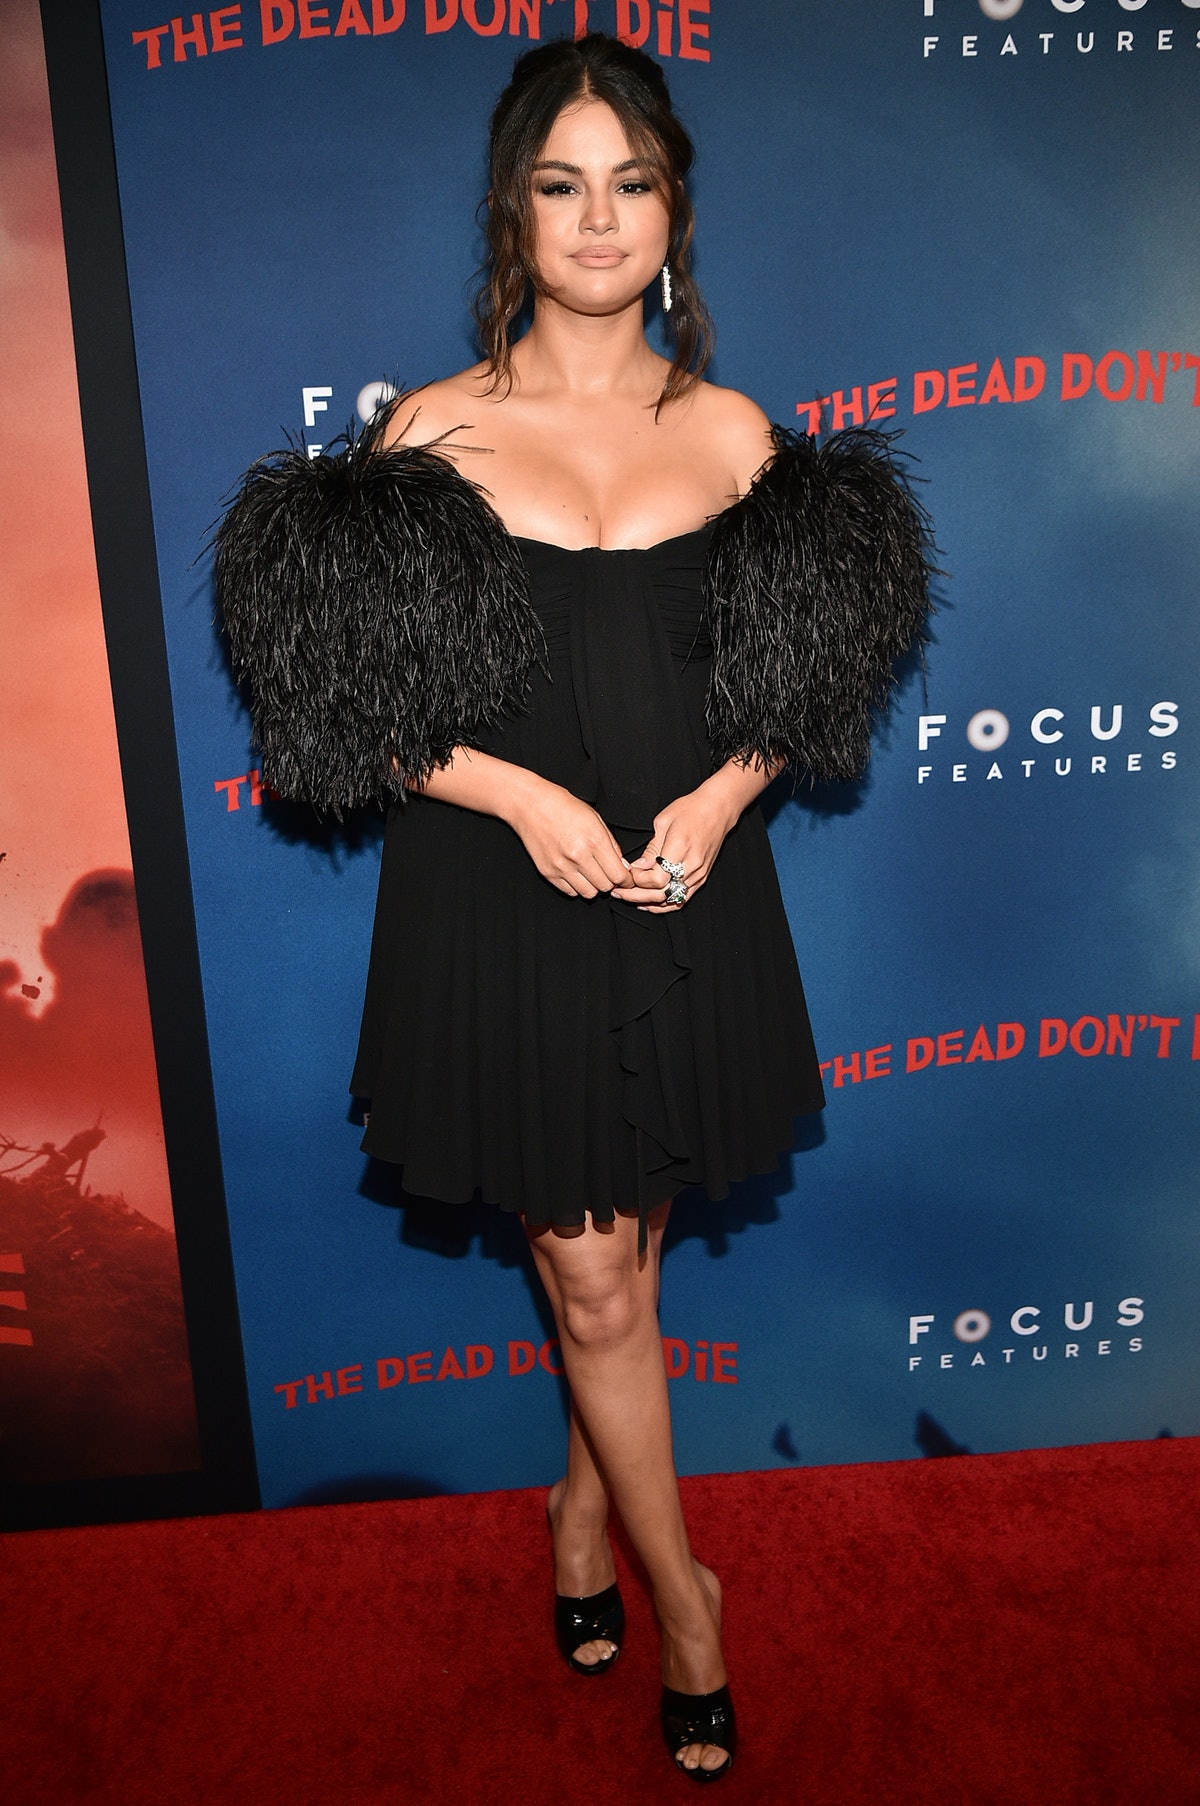 Selena Gomez, pictured here at a film premiere in a black dress, said she was criticized for seeking mental health treatment in previous years.